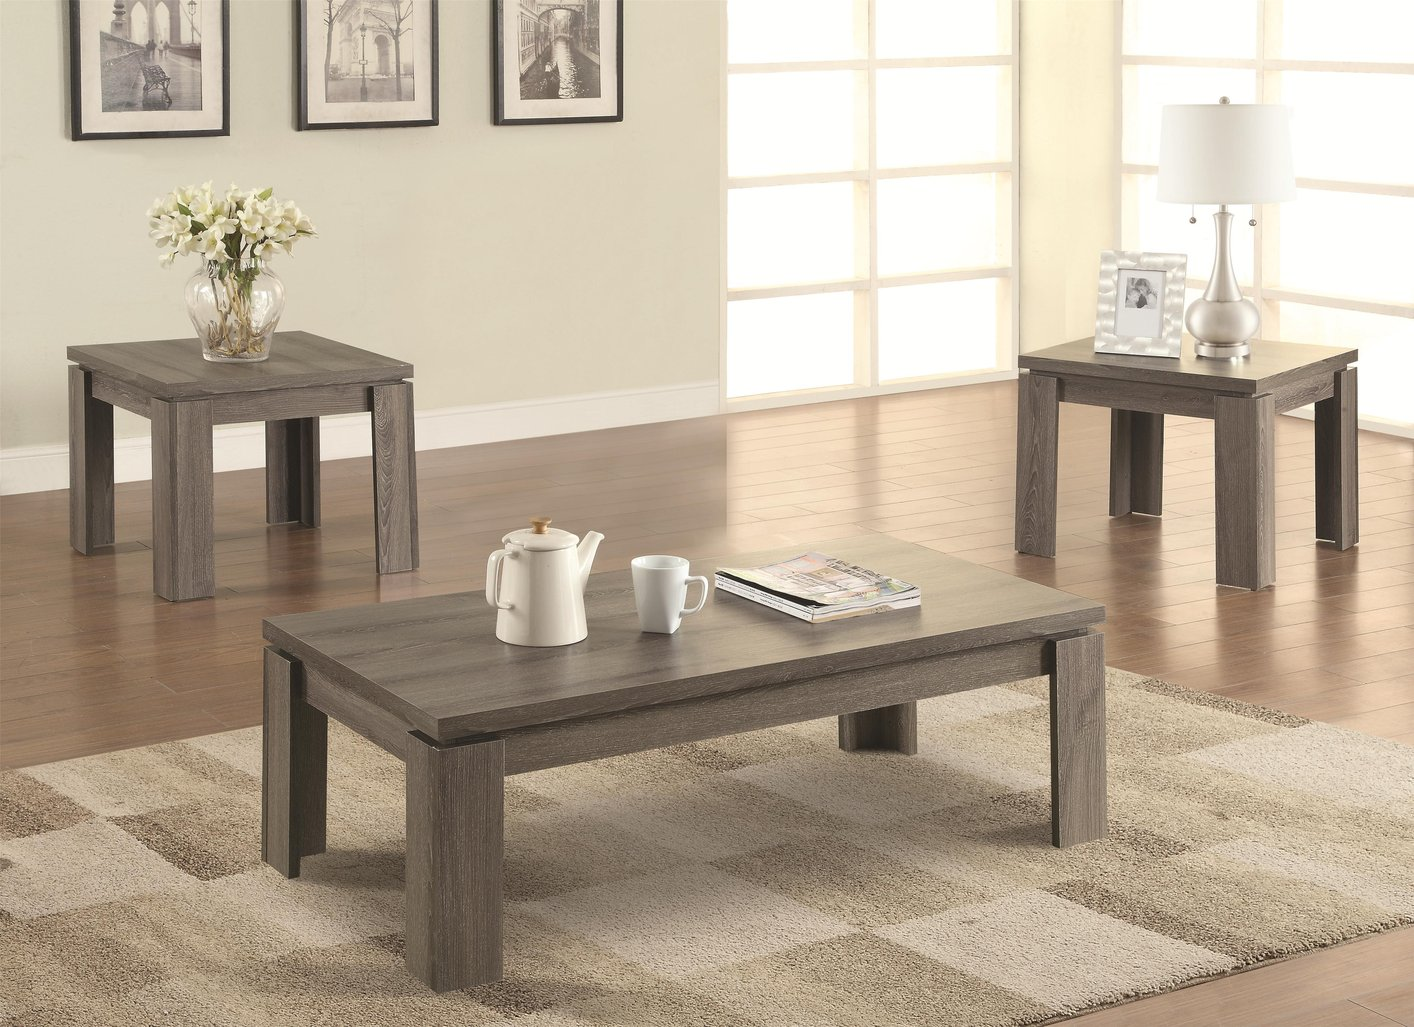 Coffee table sets gray wooden coffee table set SCTHWIE